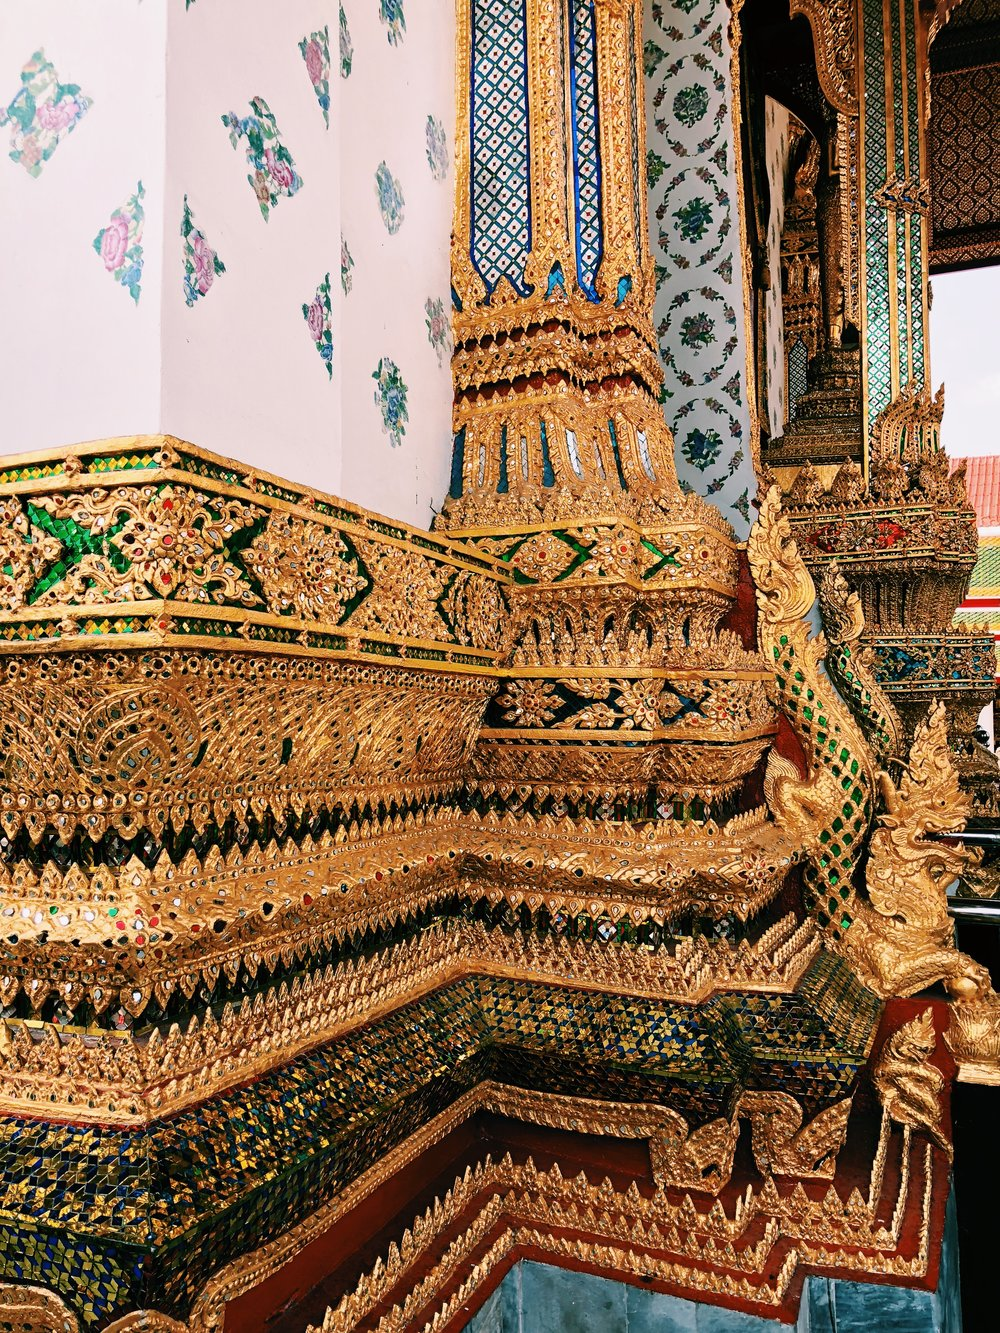 The detail and color of the temples in the Royal Palace are incredible. This kind of elaborate decoration can be found all throughout the city.